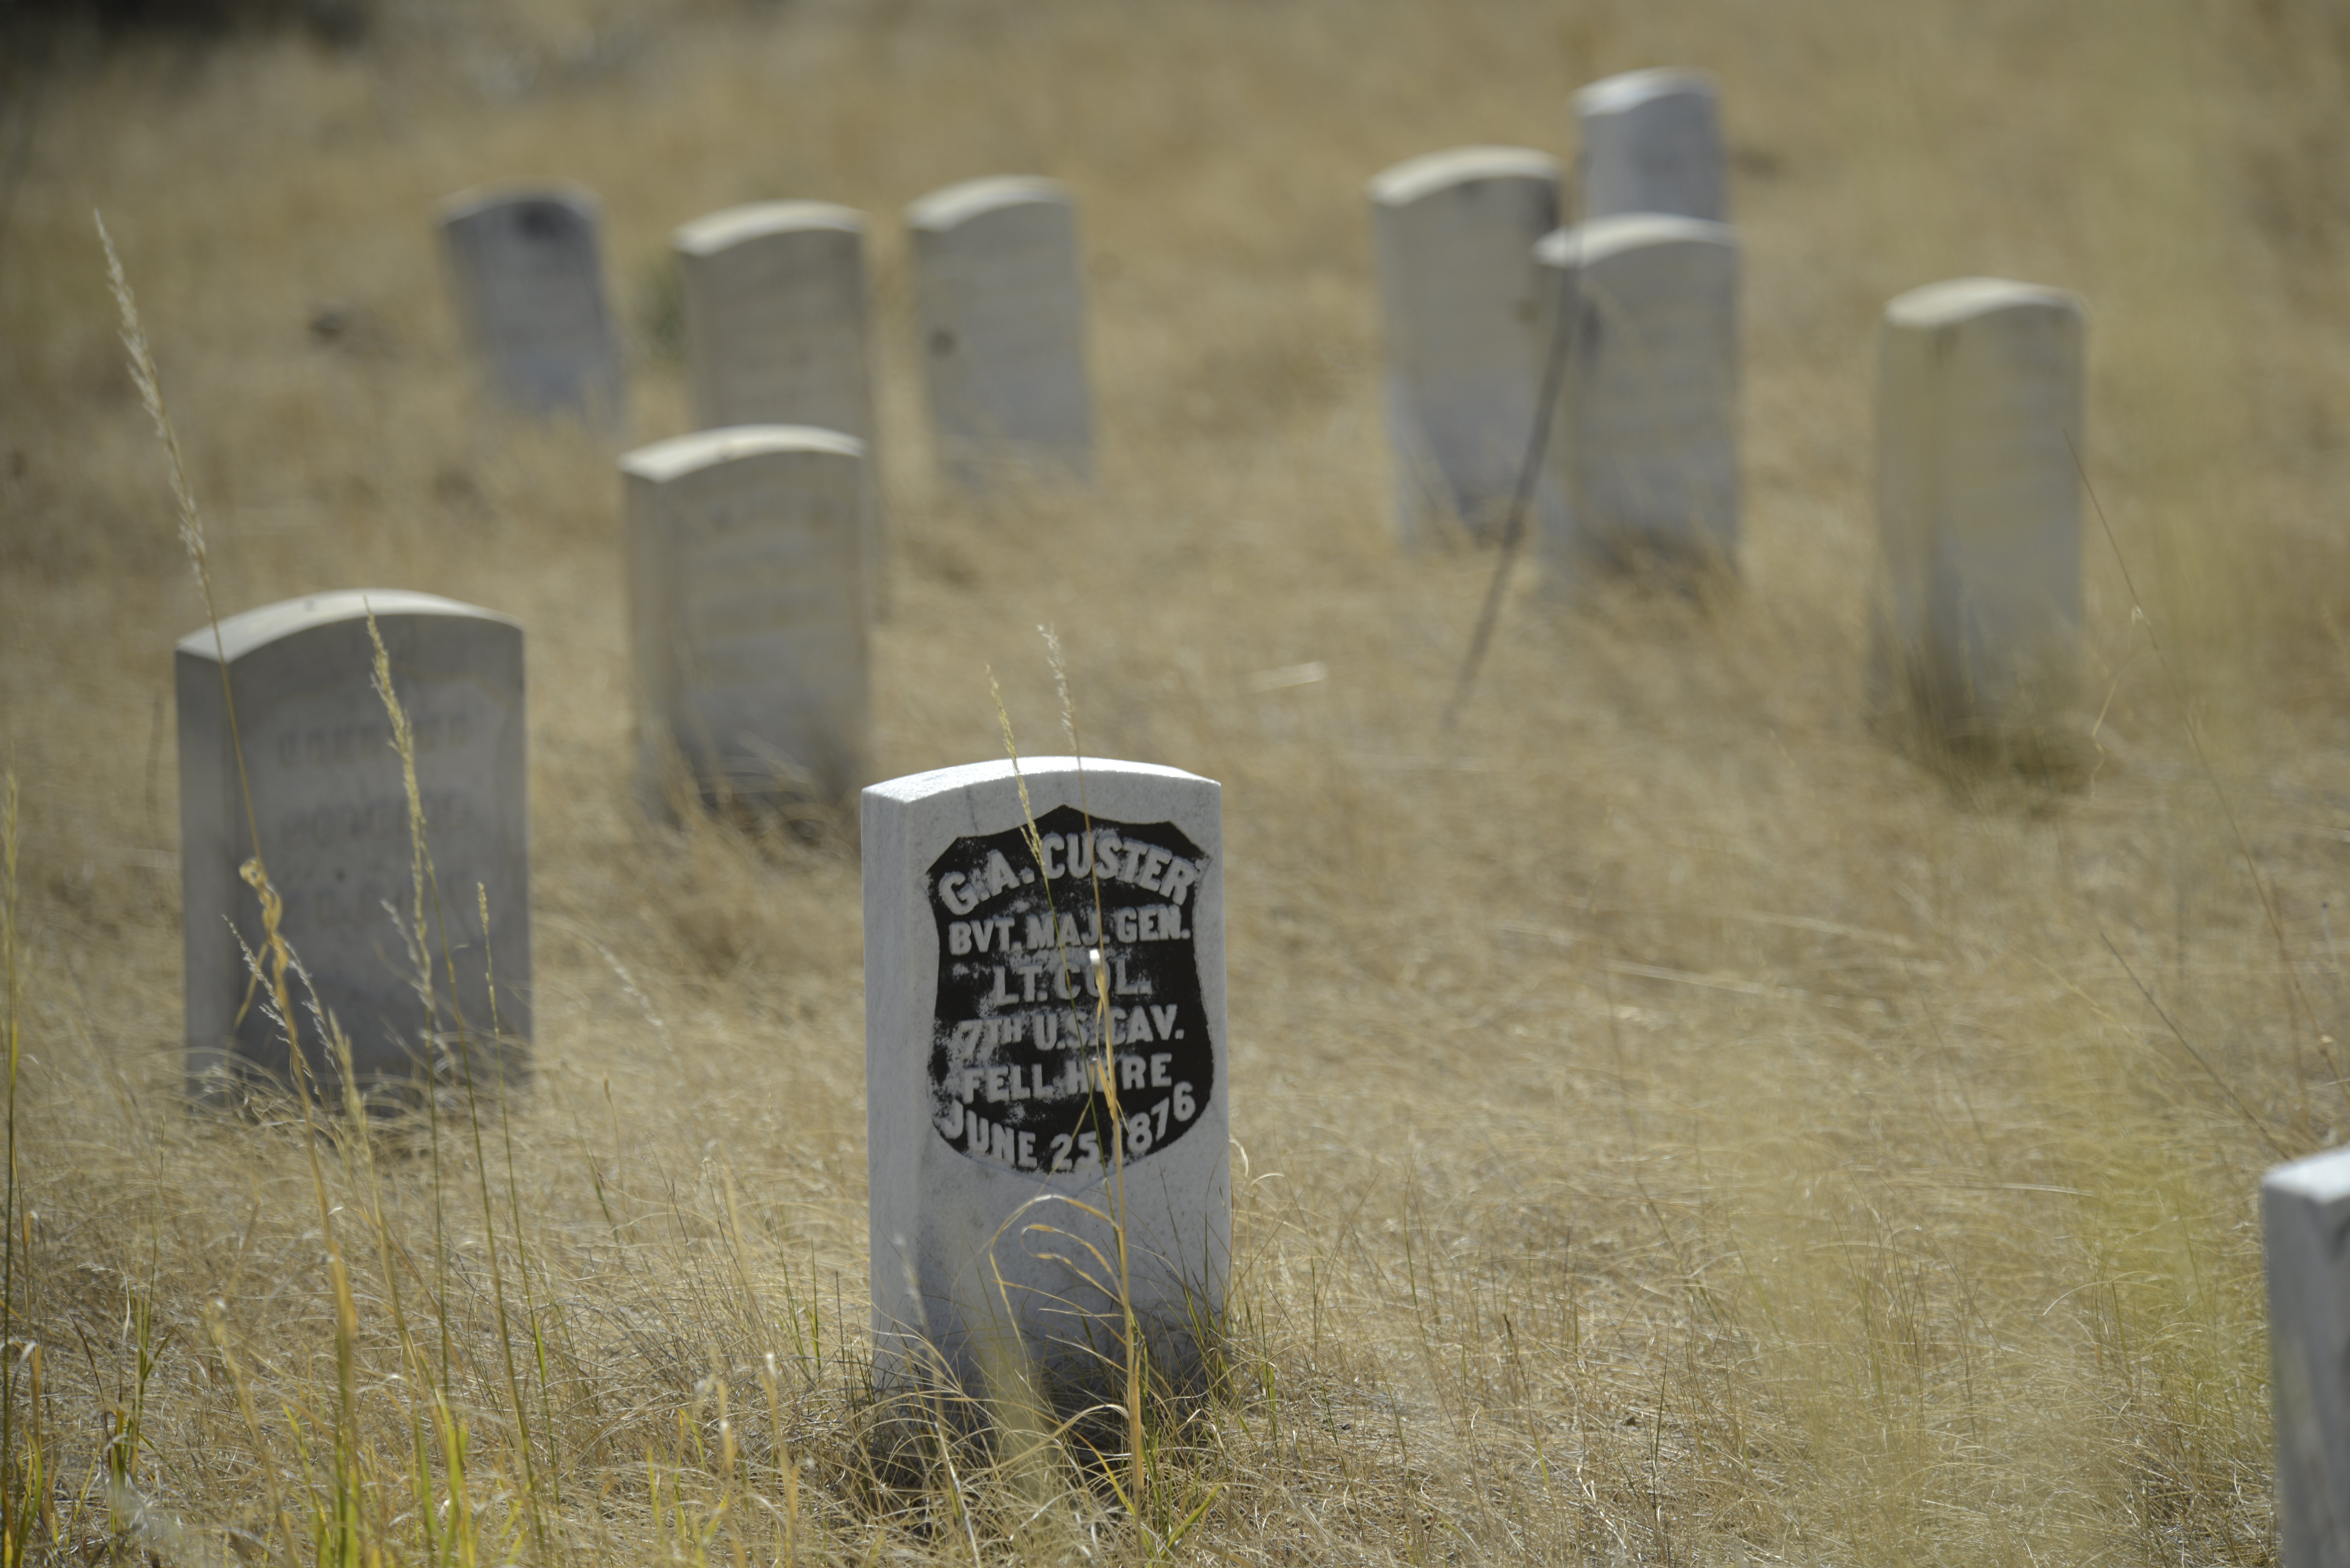 The grave marker for Gen. George Armstrong Custer on Last Stand Hill at the Little Bighorn.